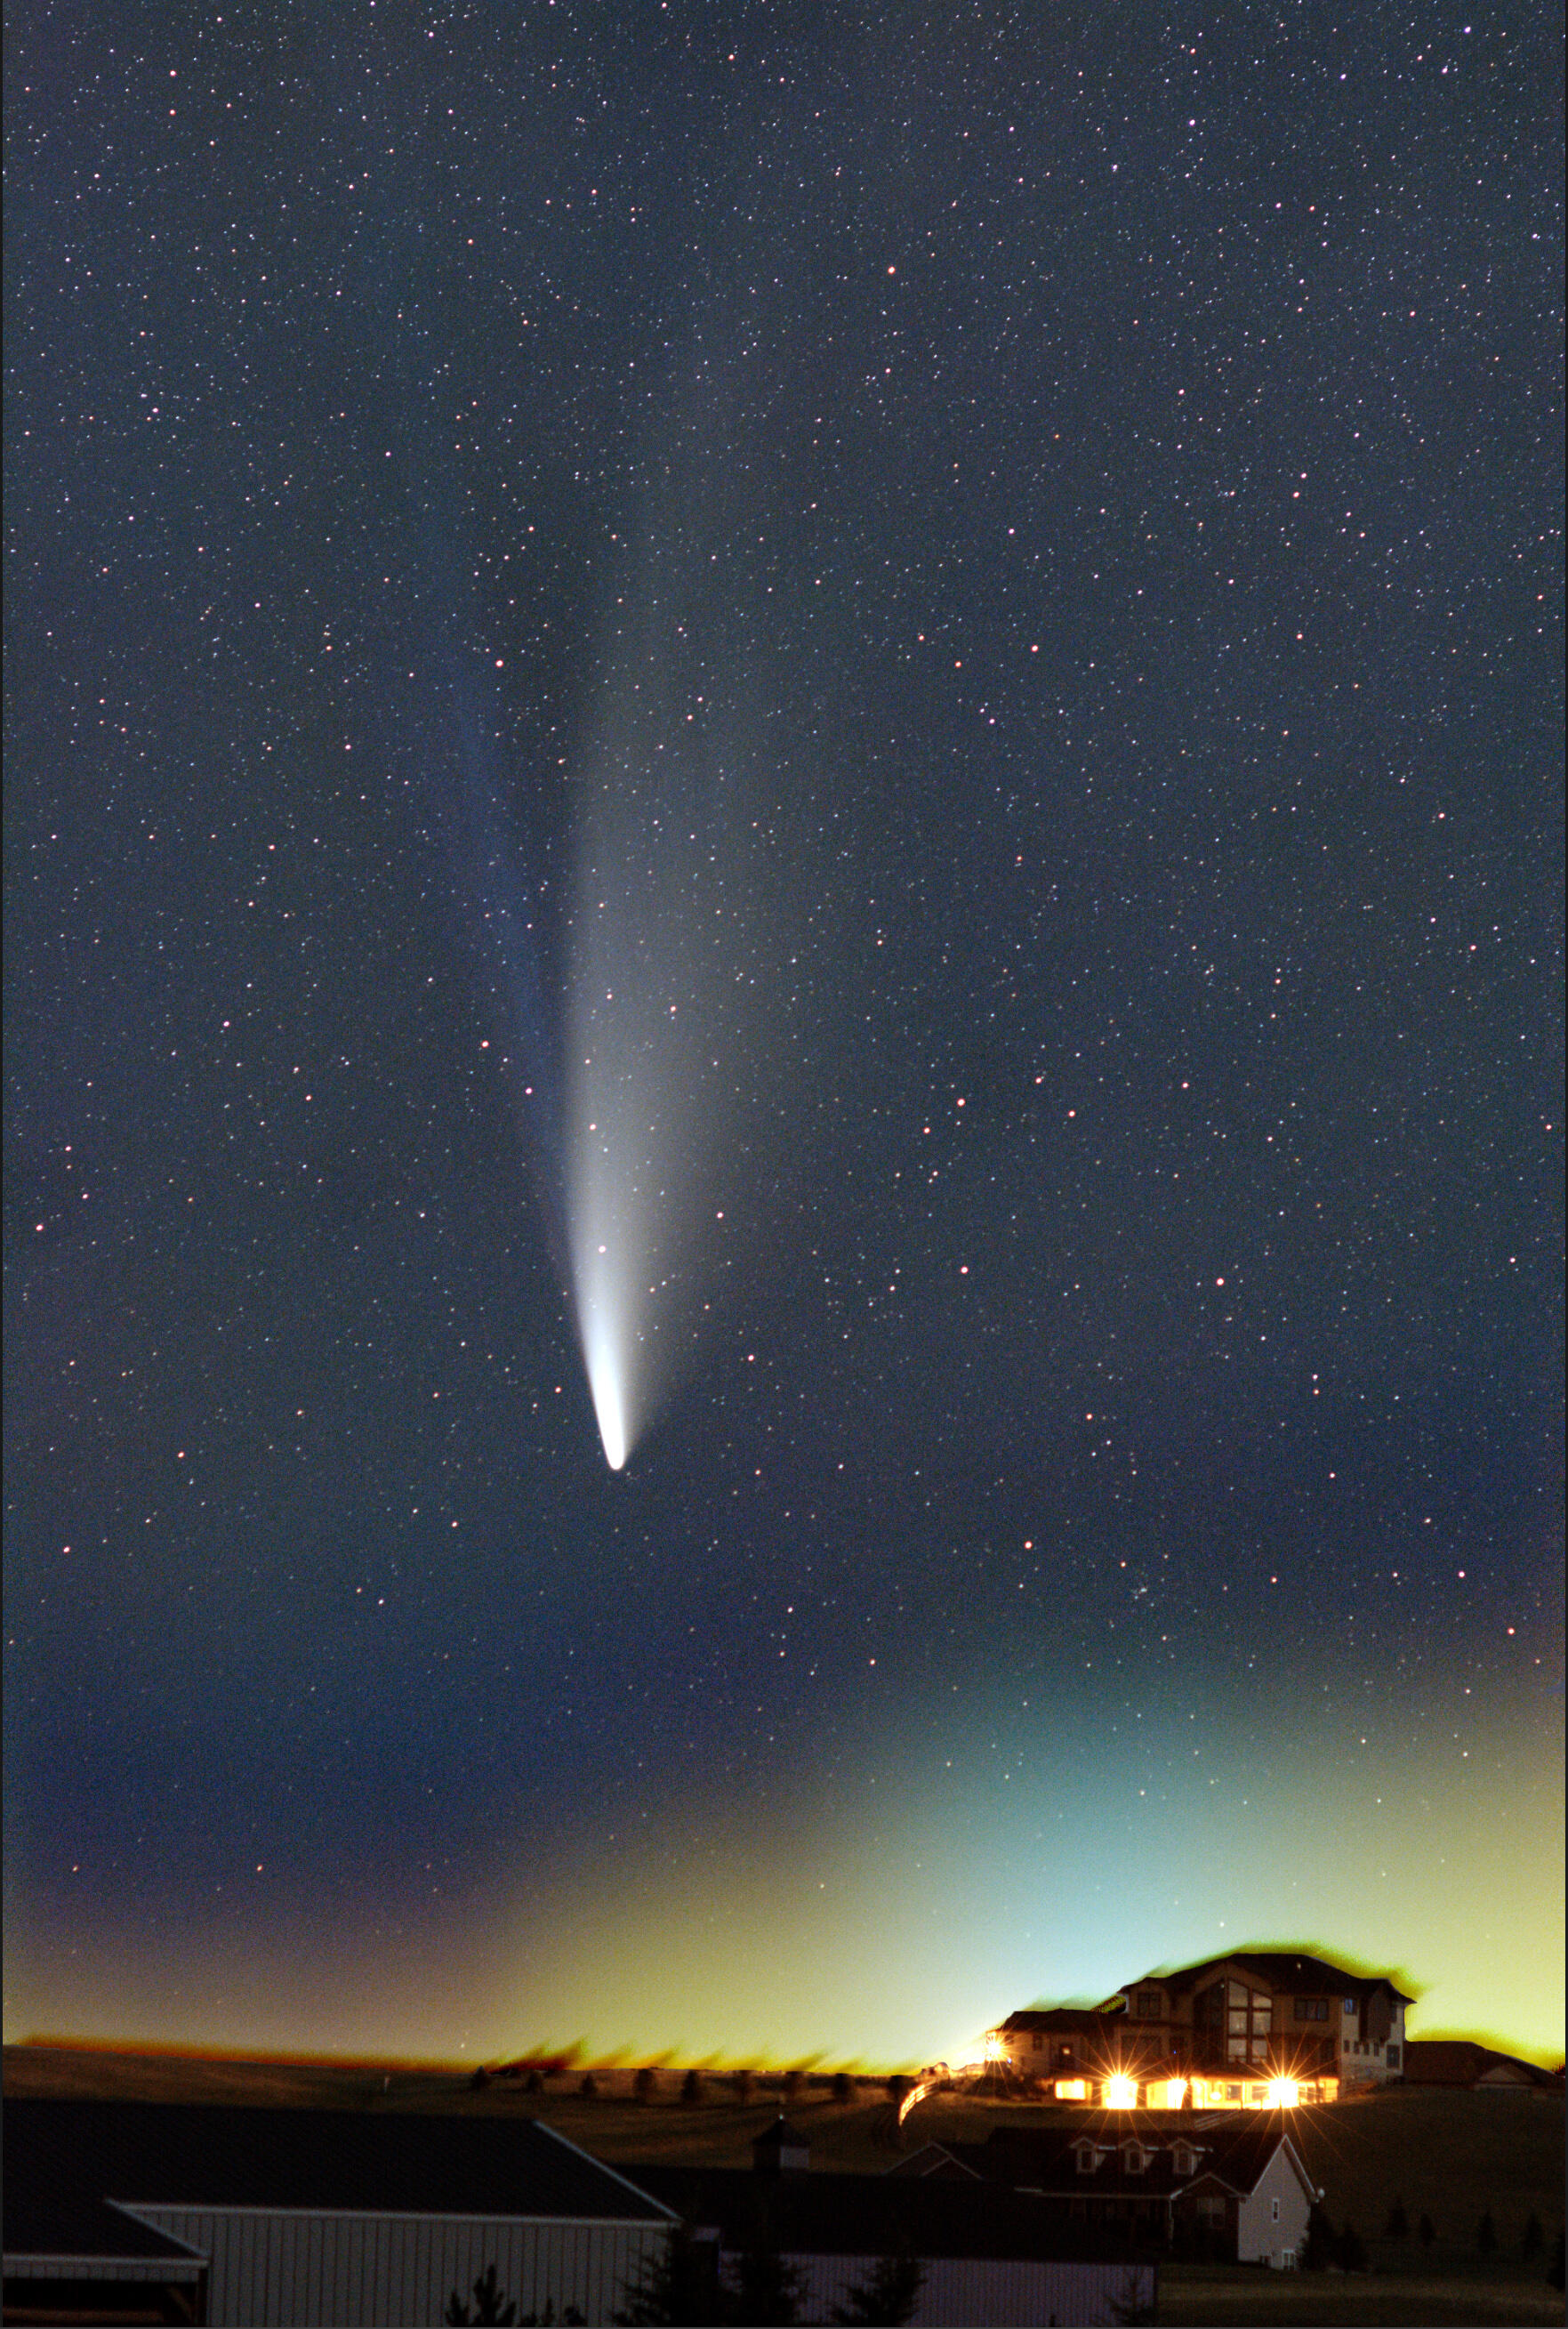 jan-curtis-comet-neowise-071220-stacked-1594816674